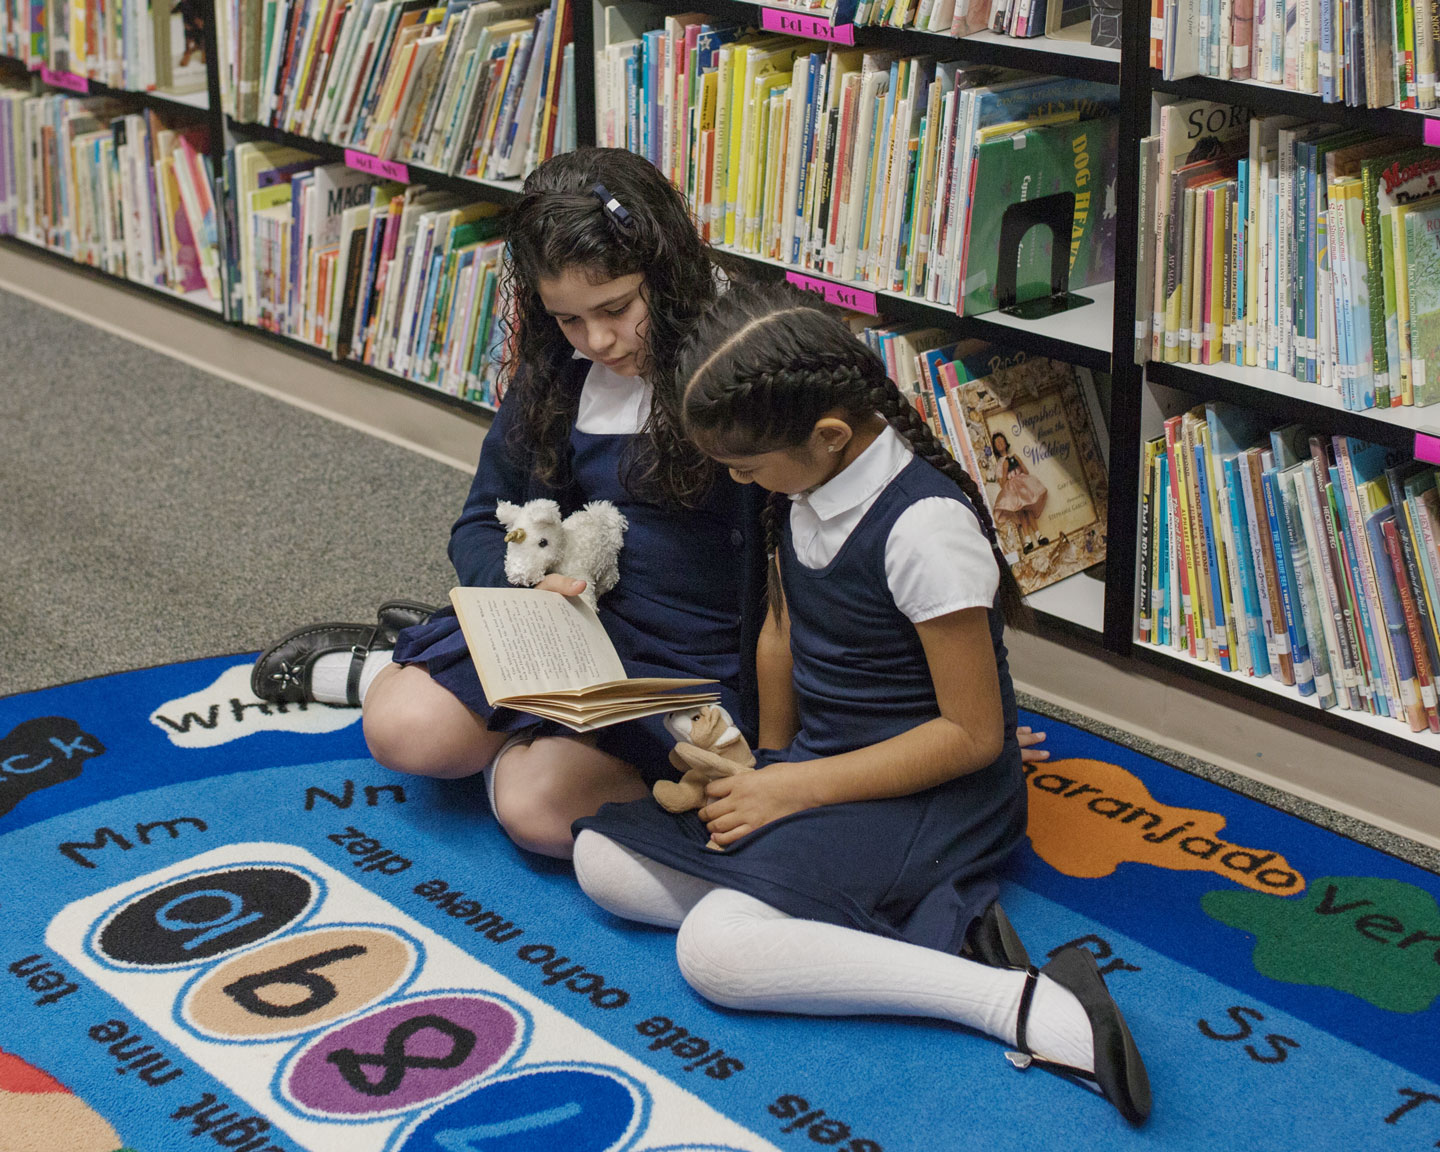 st-james-students-girls-library-4-5-1440